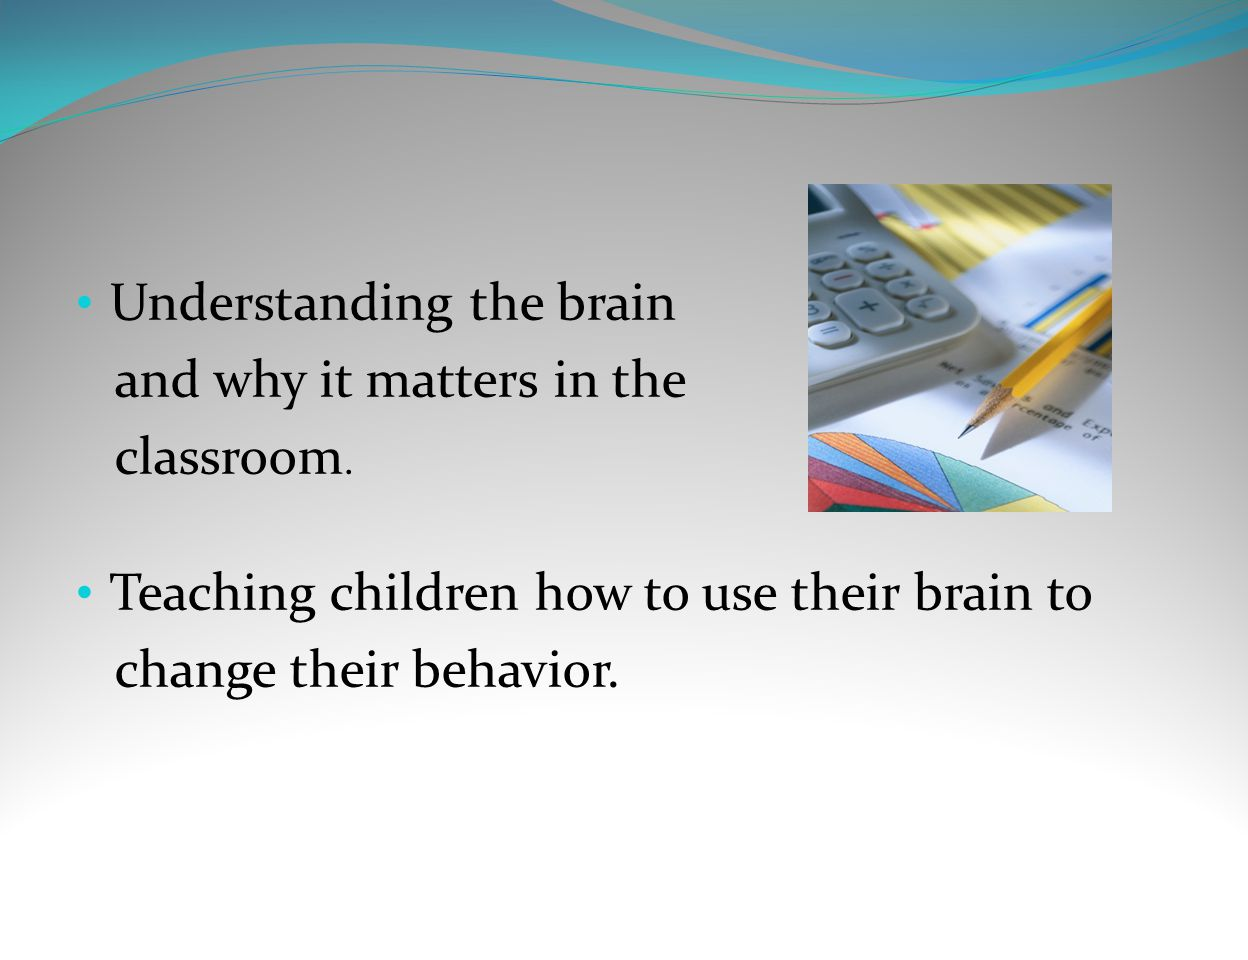 Understanding the brain and why it matters in the classroom. Teaching children how to use their brain to change their behavior.